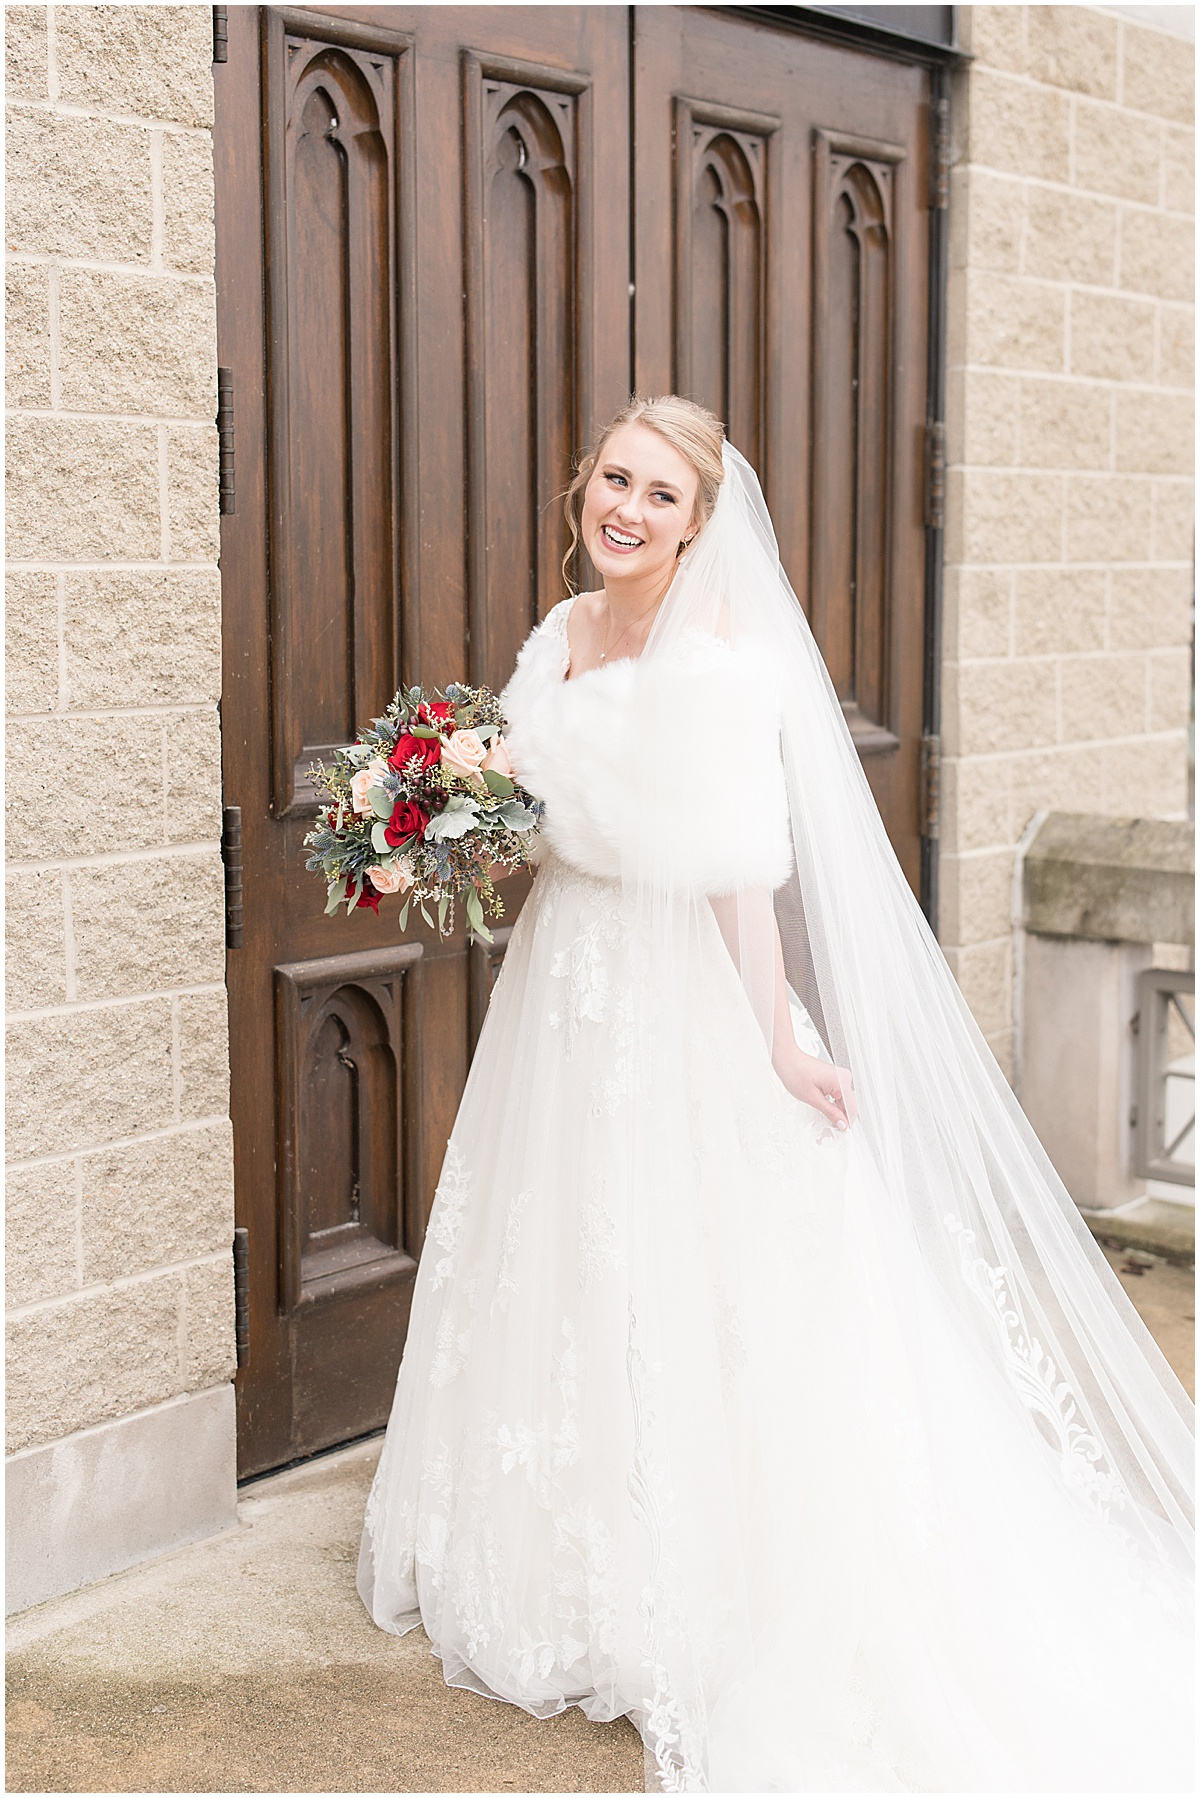 Bridal portrait before winter wedding at the Cathedral of Saint Mary in Lafayette, Indiana by Victoria Rayburn Photography